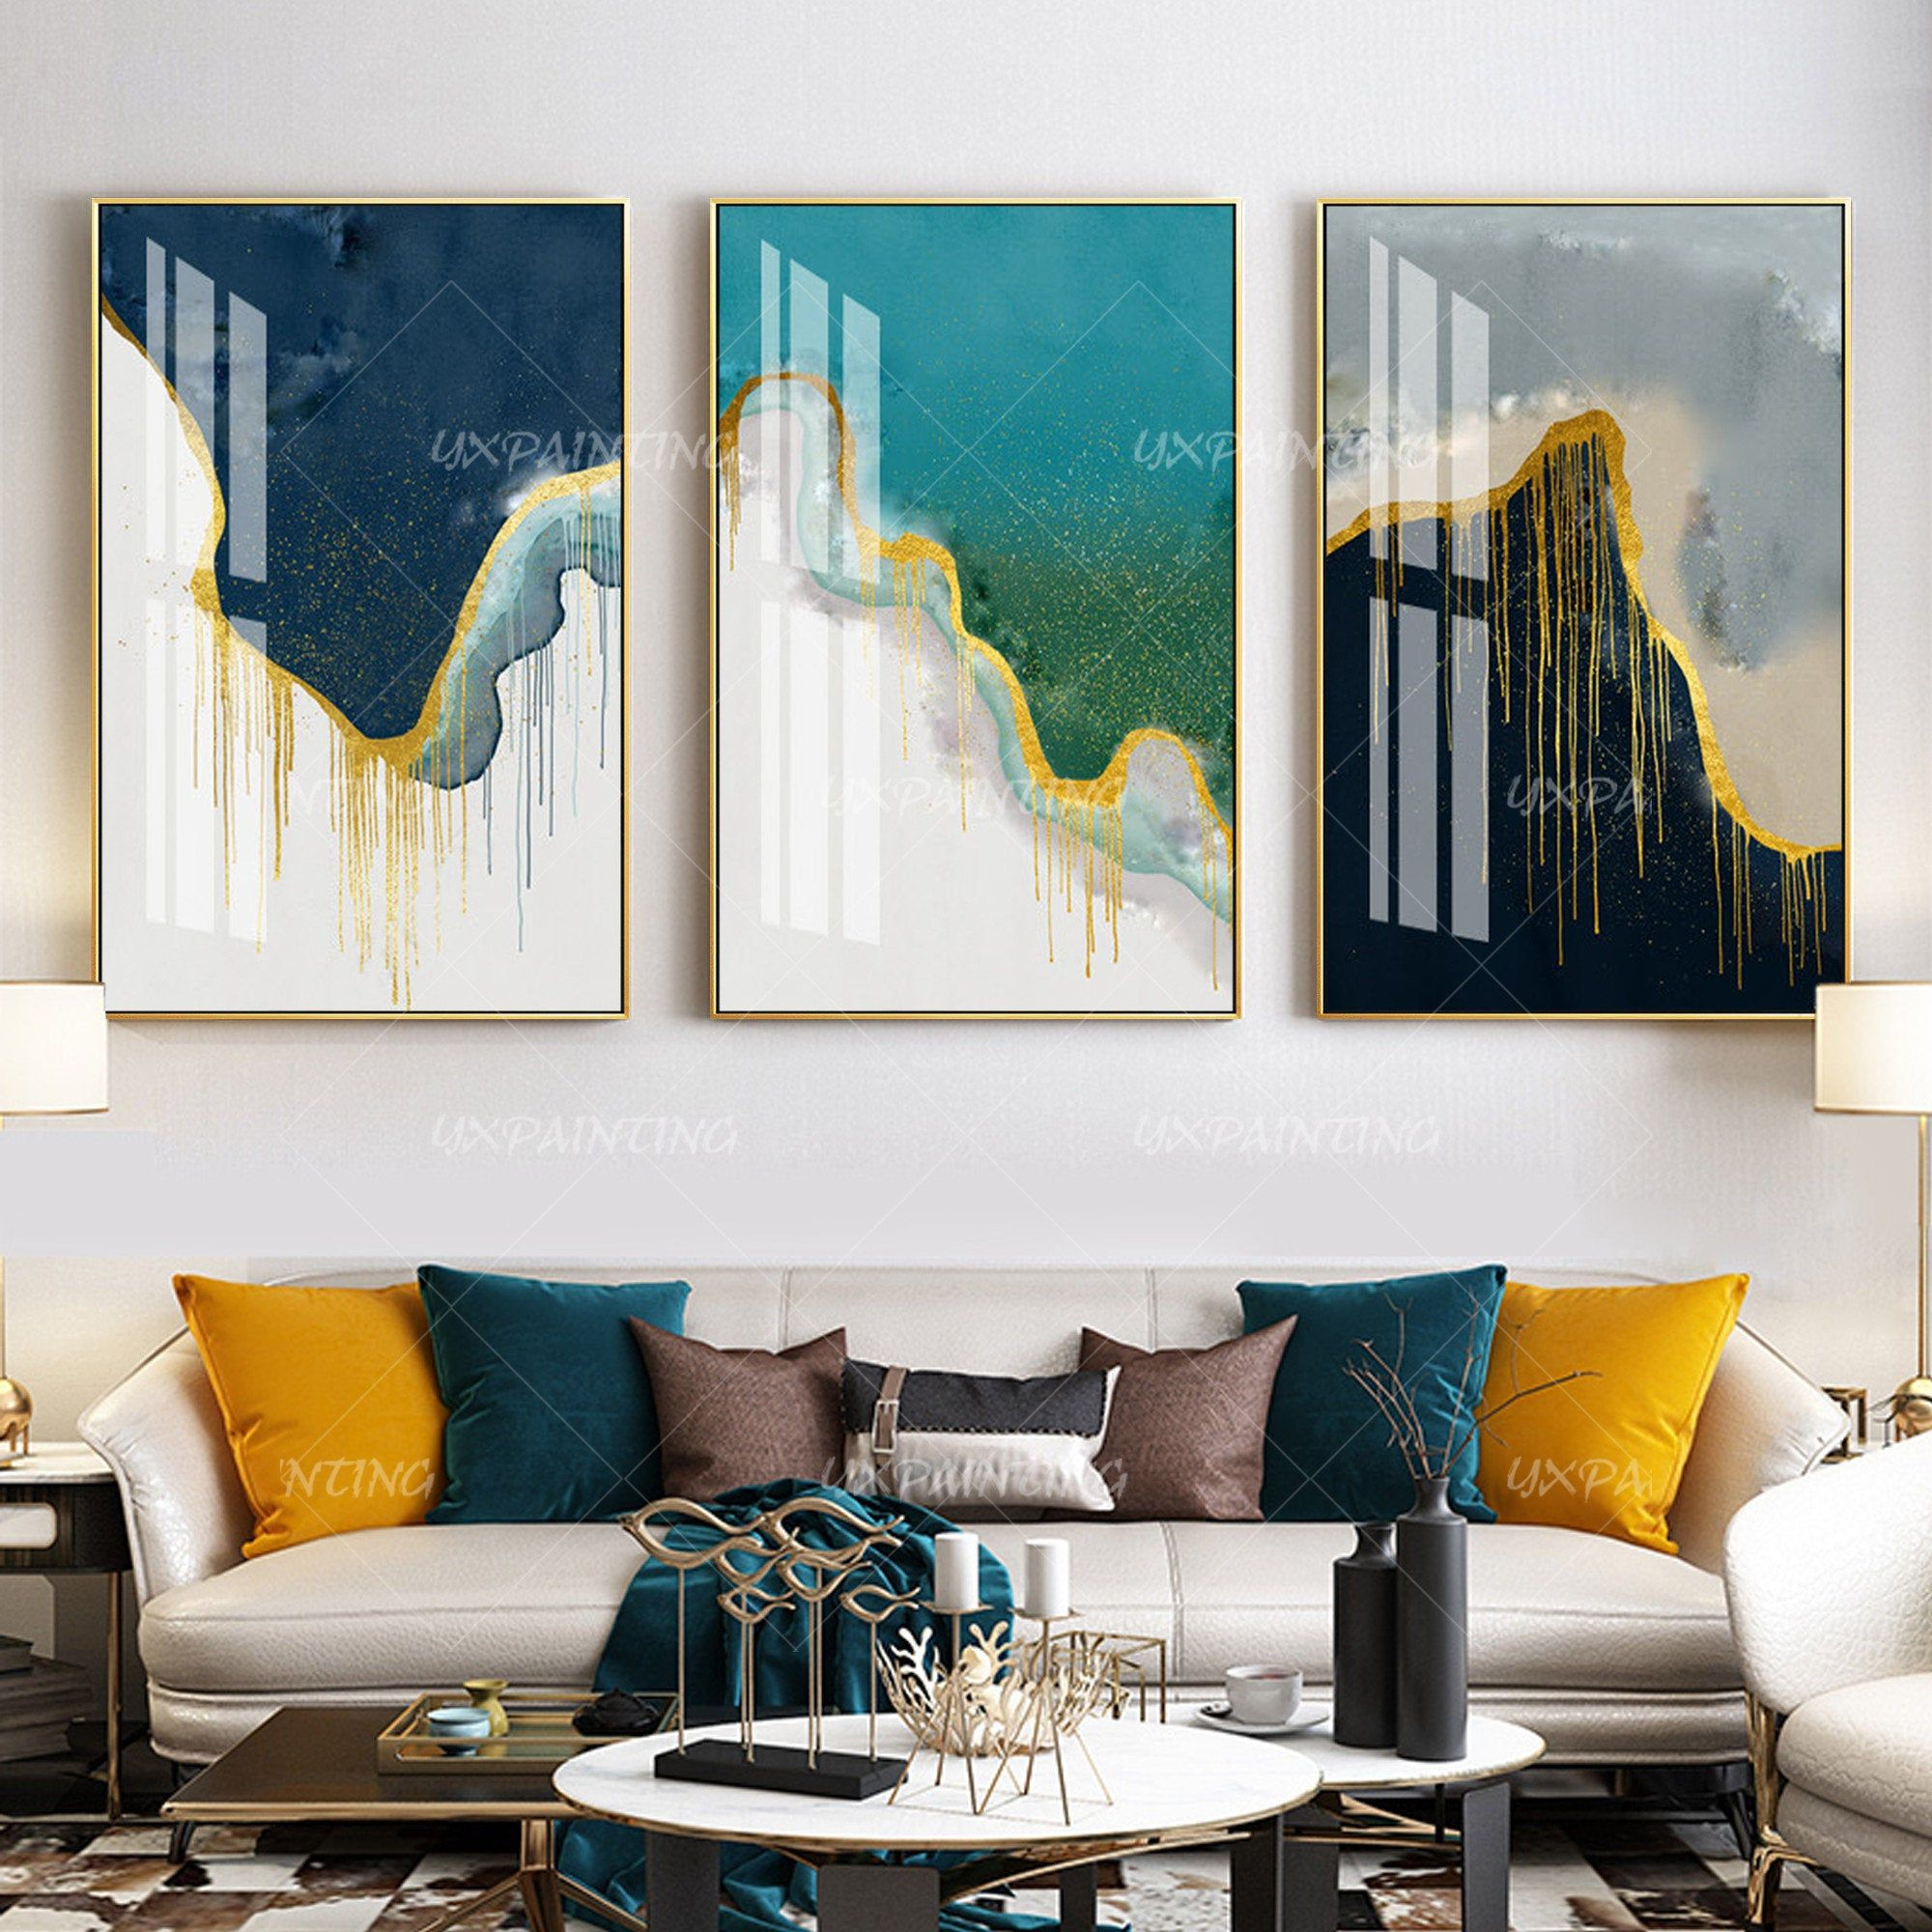 3 Pieces Wall Art Yxpainting Blue Art Abstract Print Gold Art Etsy Blue Abstract Art 3 Piece Wall Art Gold Art Print